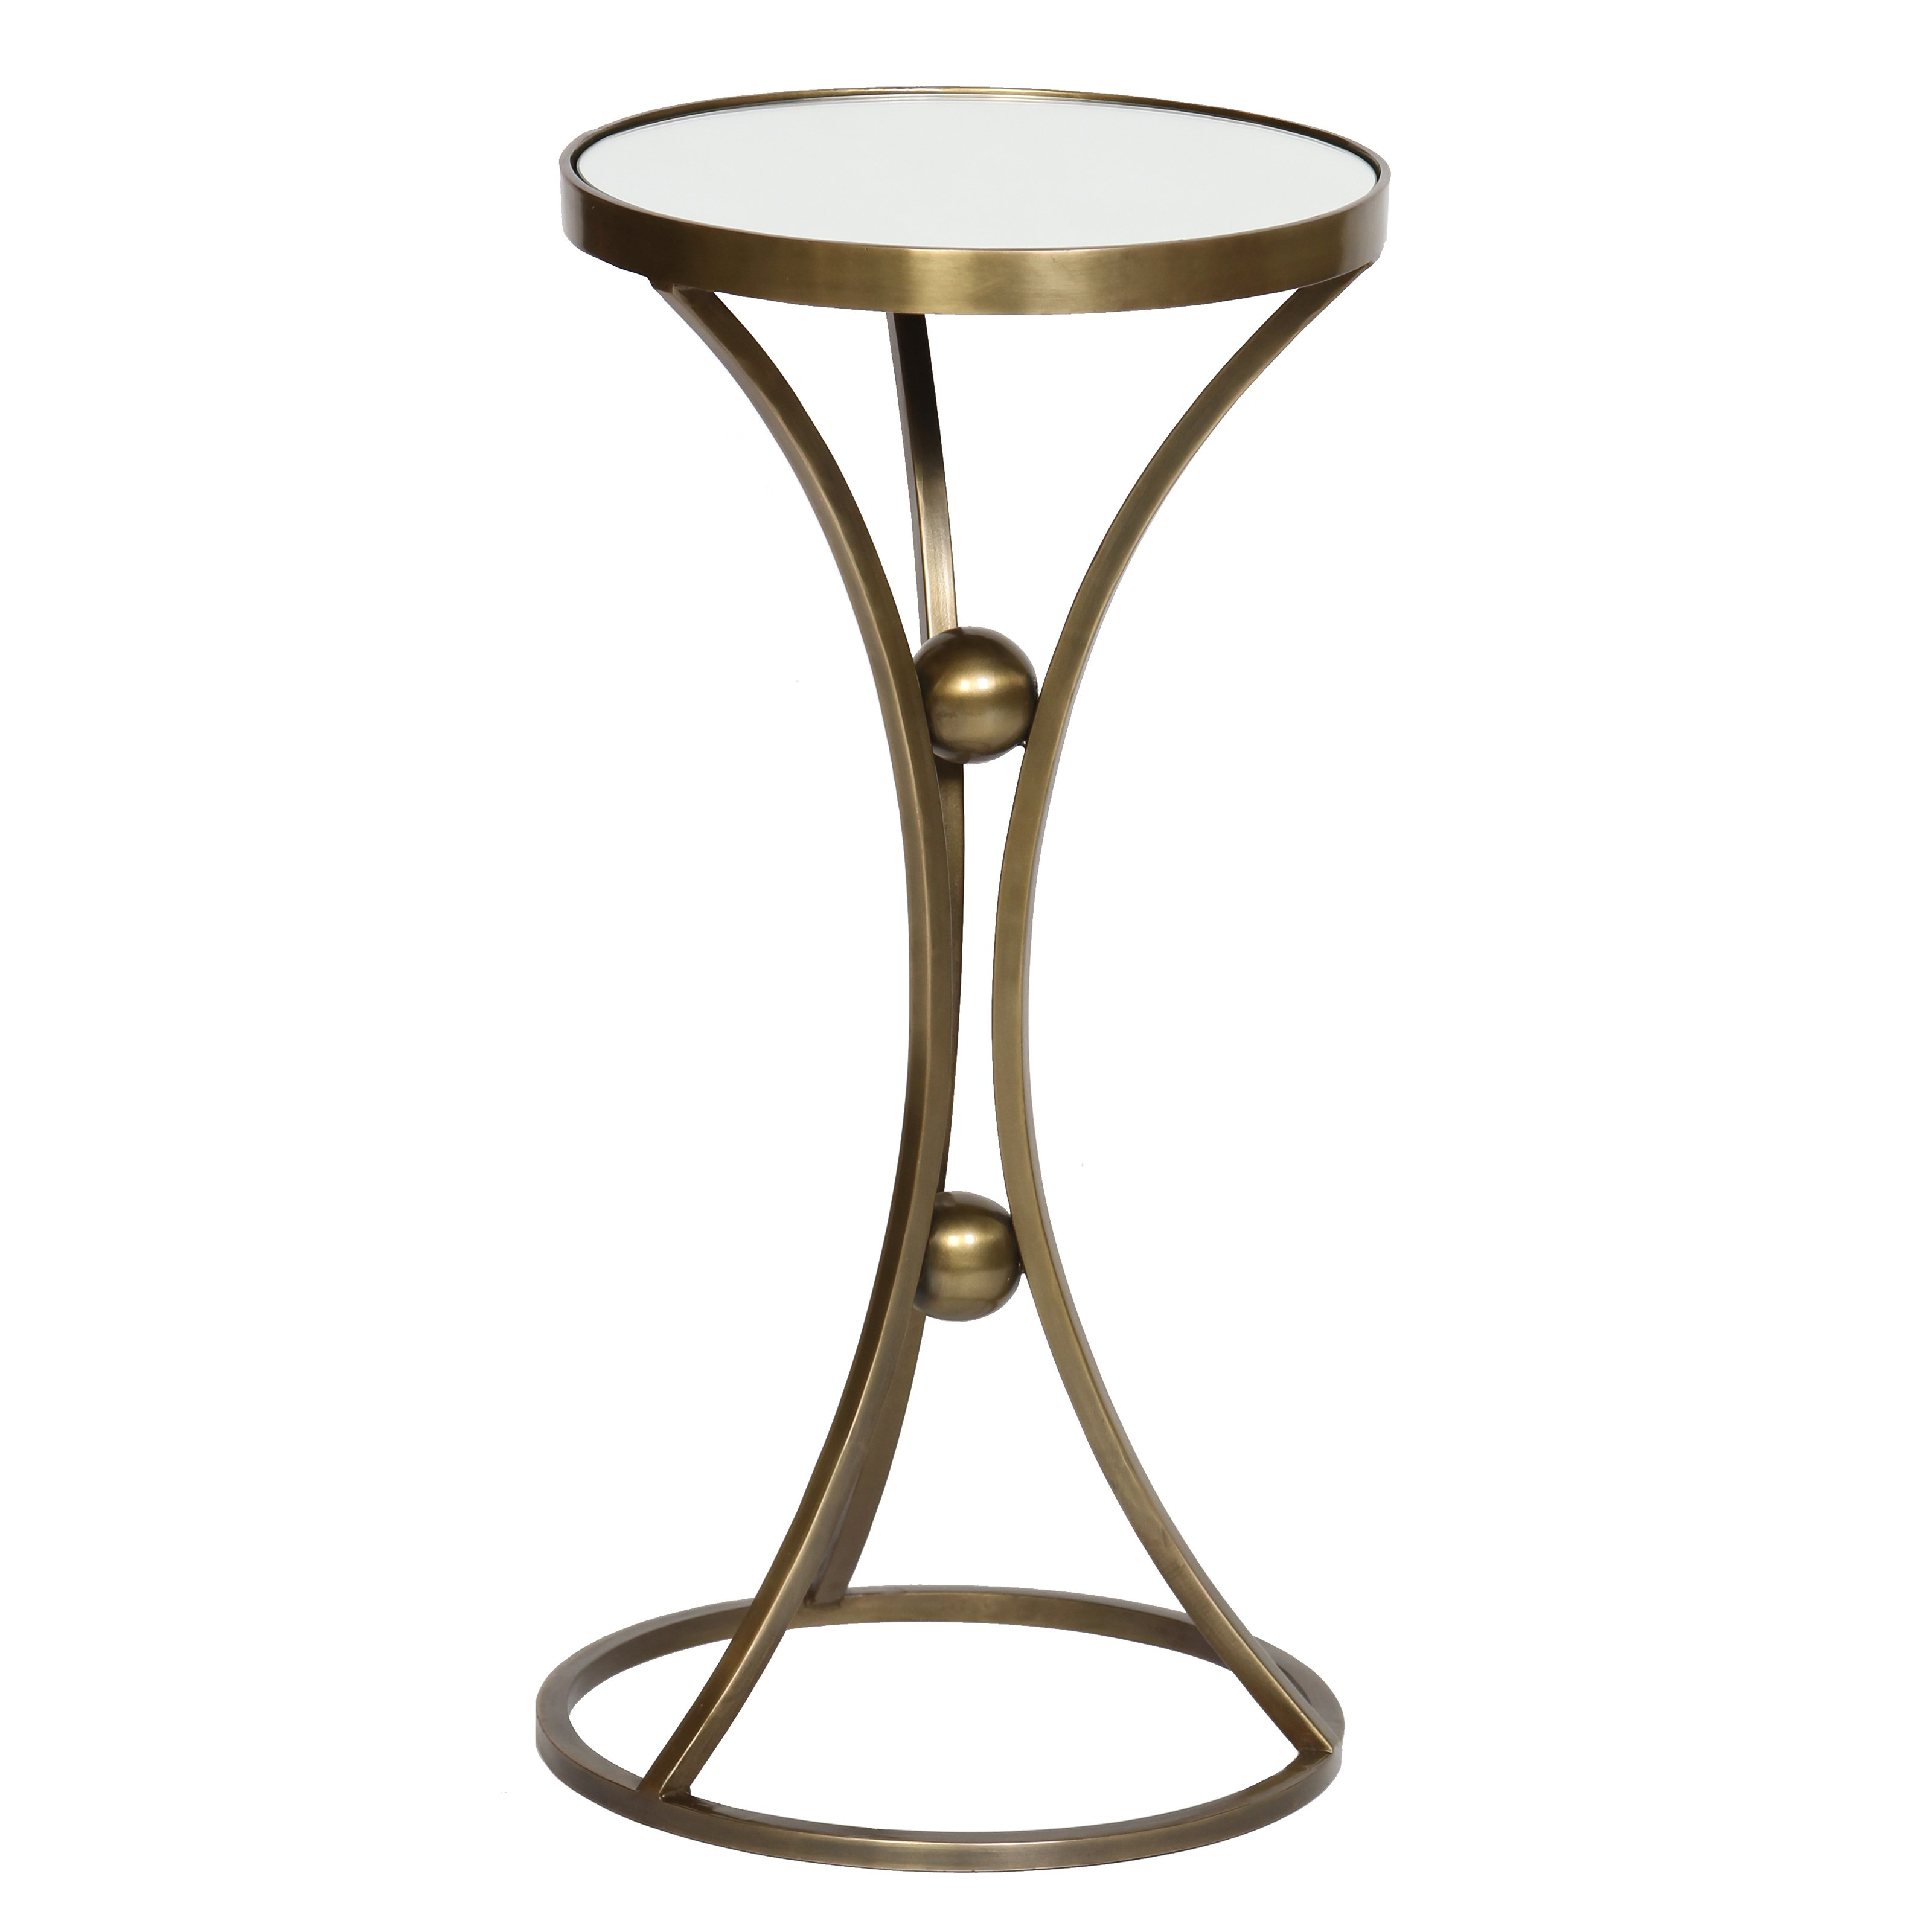 prima legged accent table antique brass vintage round pier one ott kitchen sofa white oval coffee screened gazebo stand alone outdoor umbrellas farm style end tables inch lamp